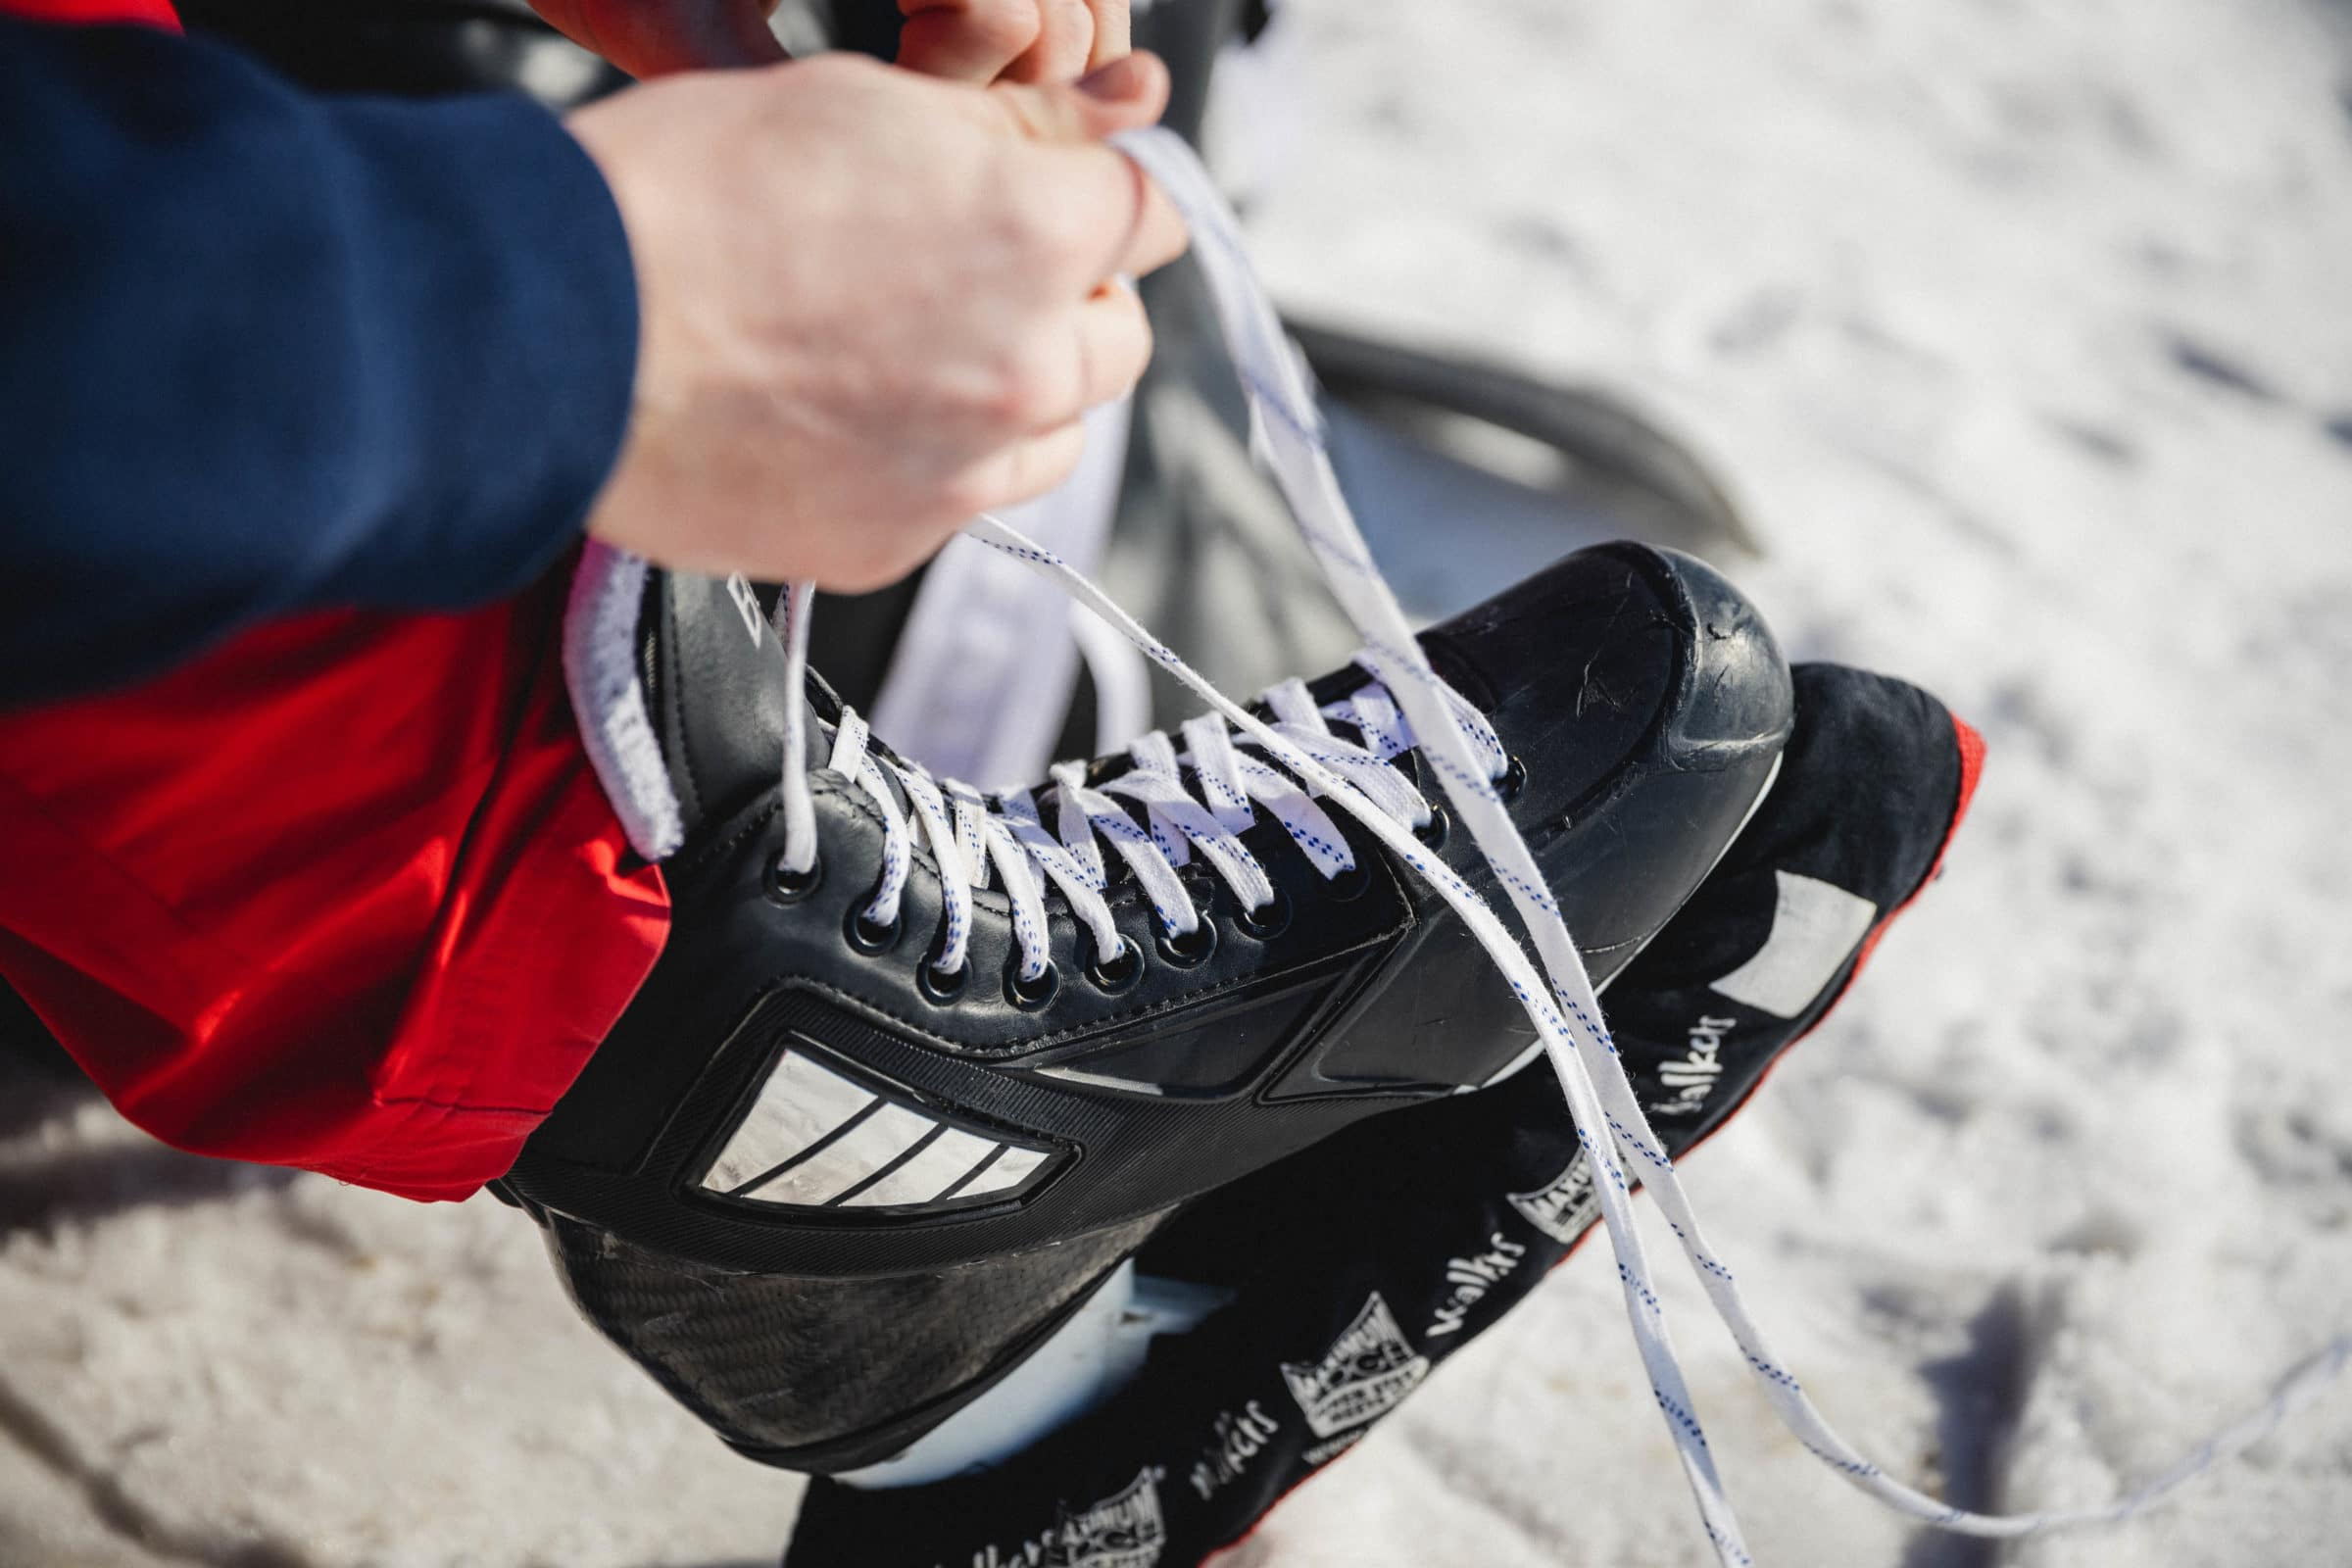 Hands tying up a skate